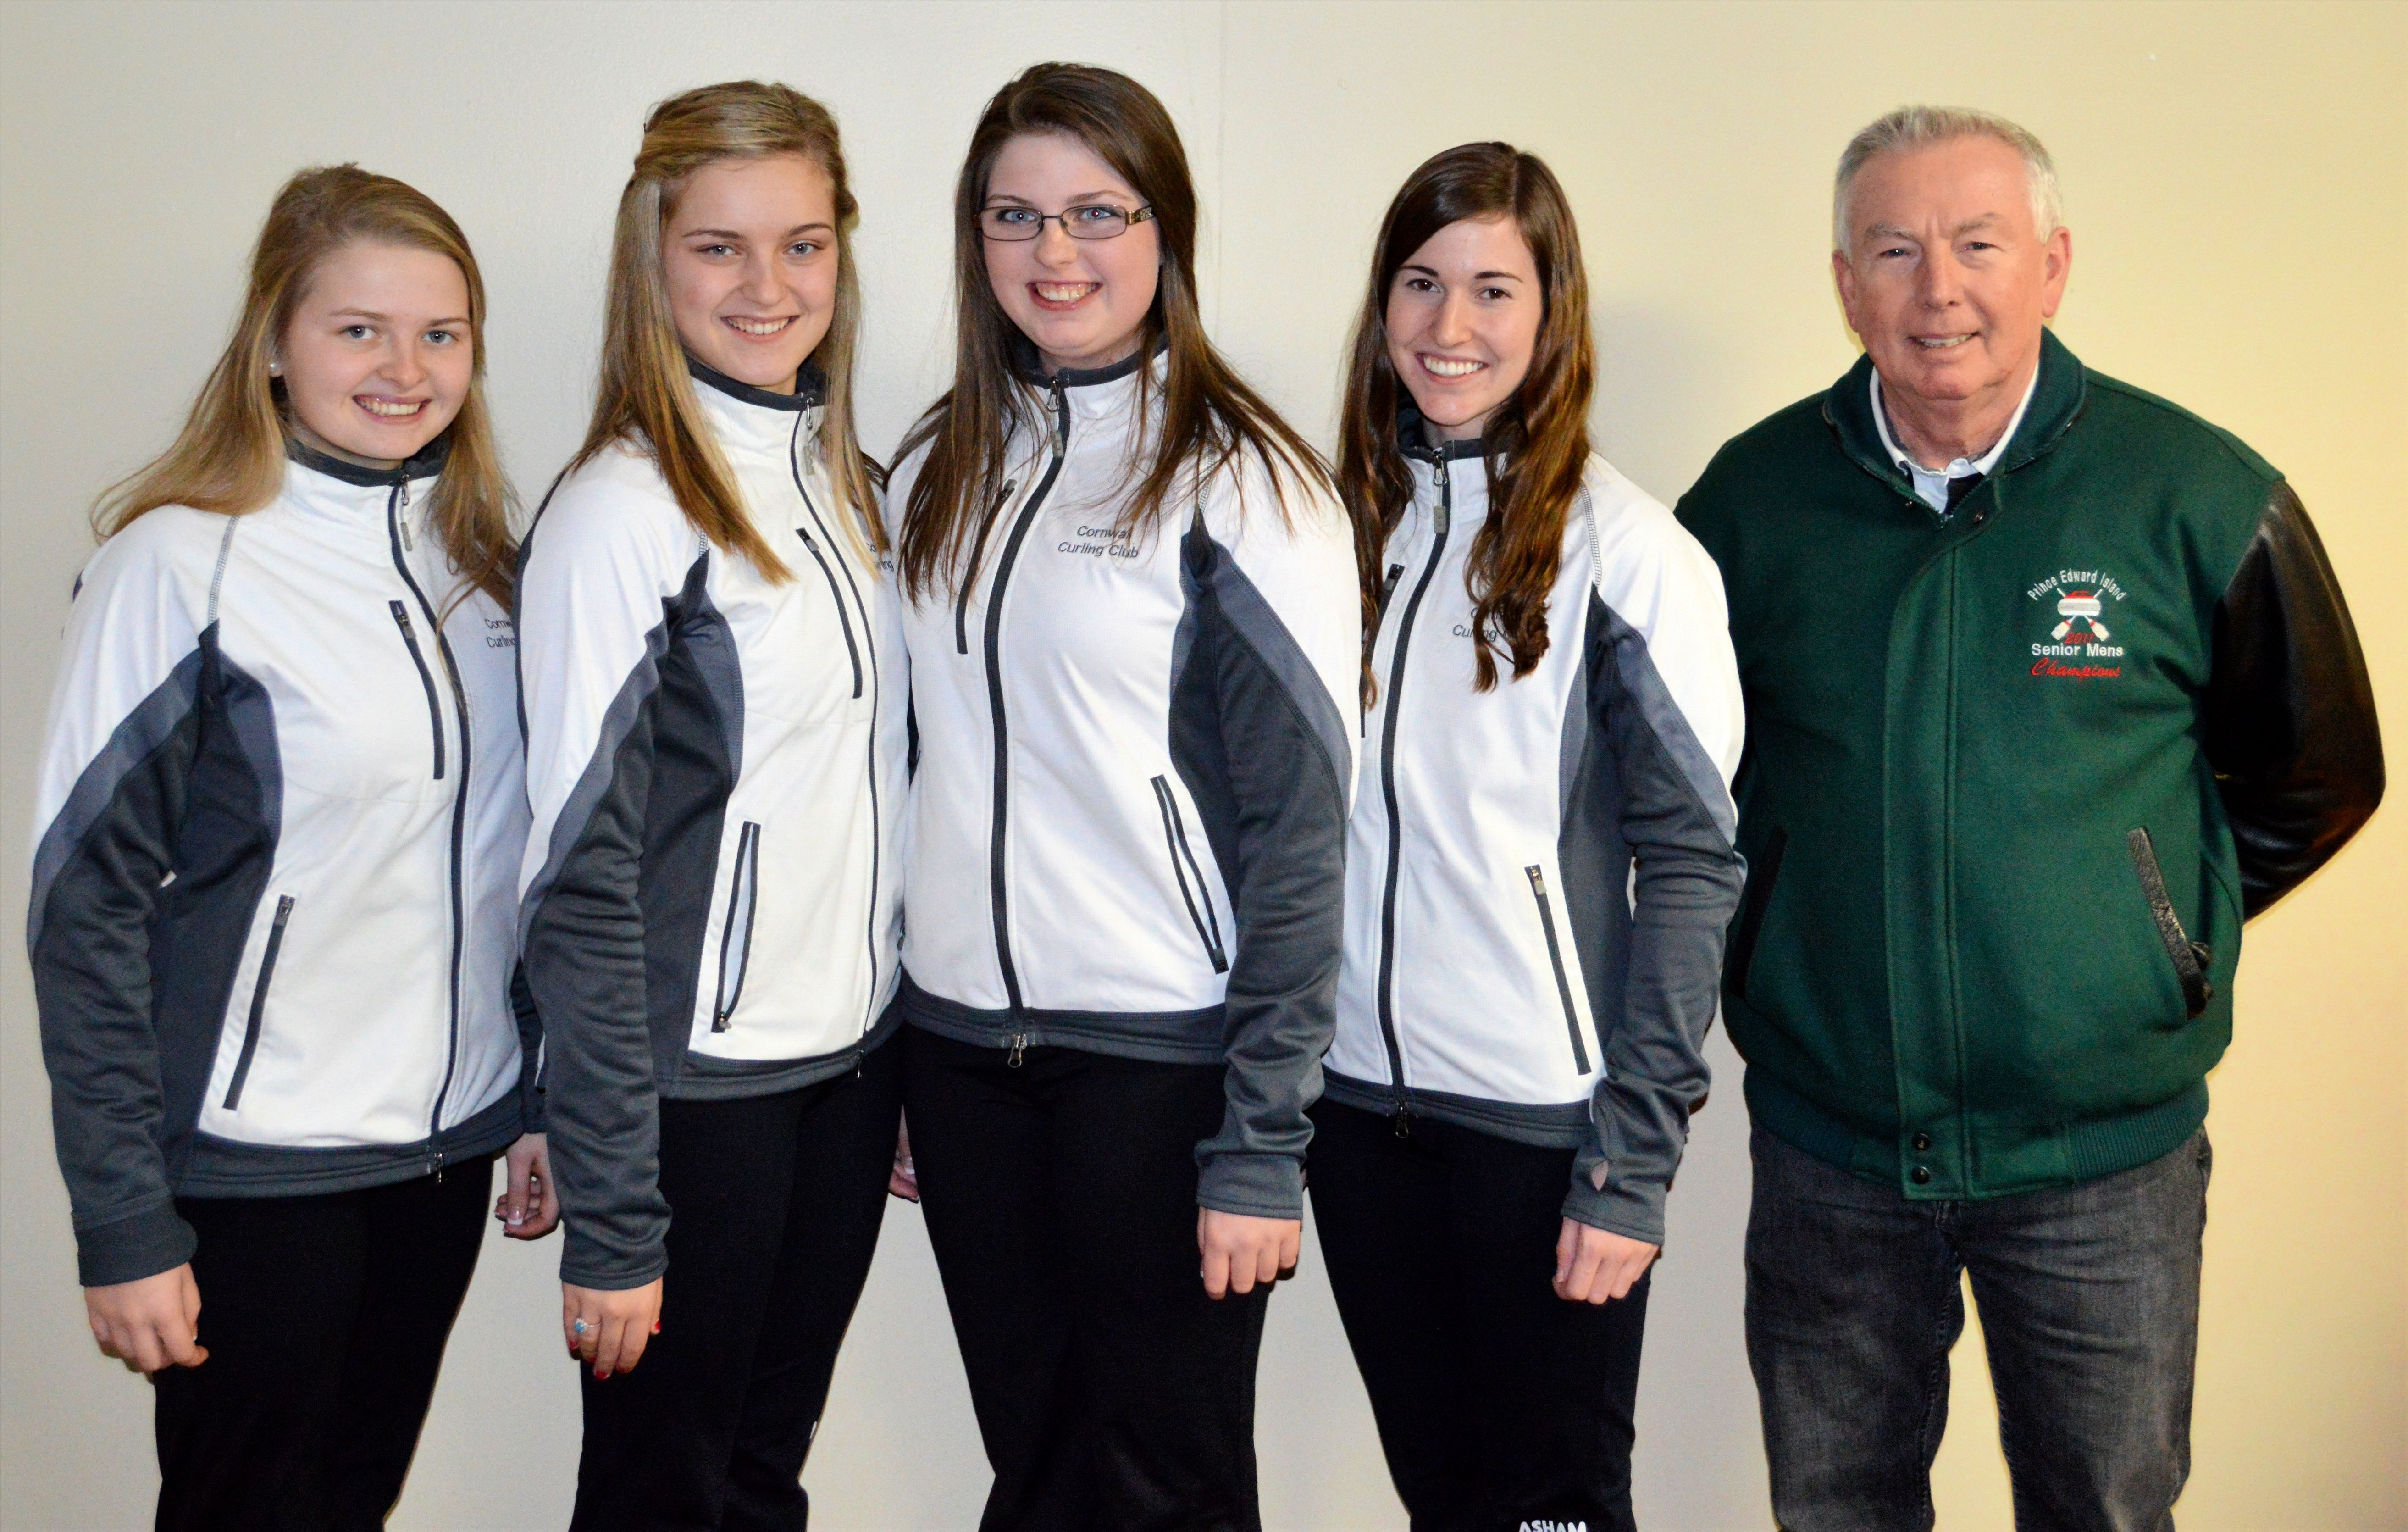 Breaking news! Veronica Smith rink now competing in women's div. at Curl Atlantic Ch'ship starting Thurs. in Ch'town